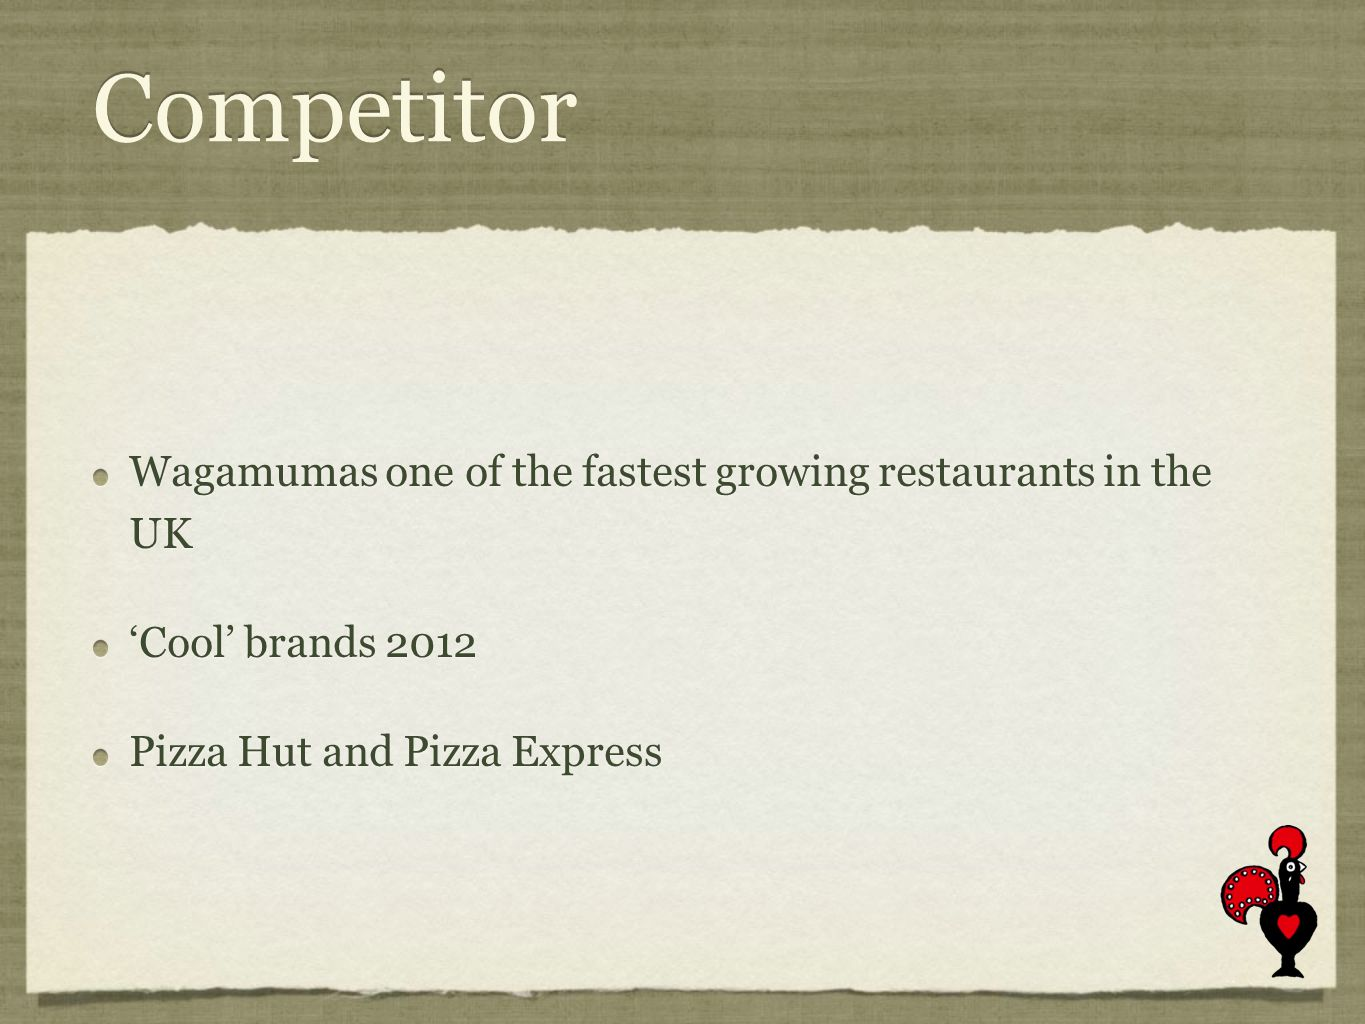 Competitor Wagamumas one of the fastest growing restaurants in the UK Cool brands 2012 Pizza Hut and Pizza Express Wagamumas one of the fastest growing restaurants in the UK Cool brands 2012 Pizza Hut and Pizza Express